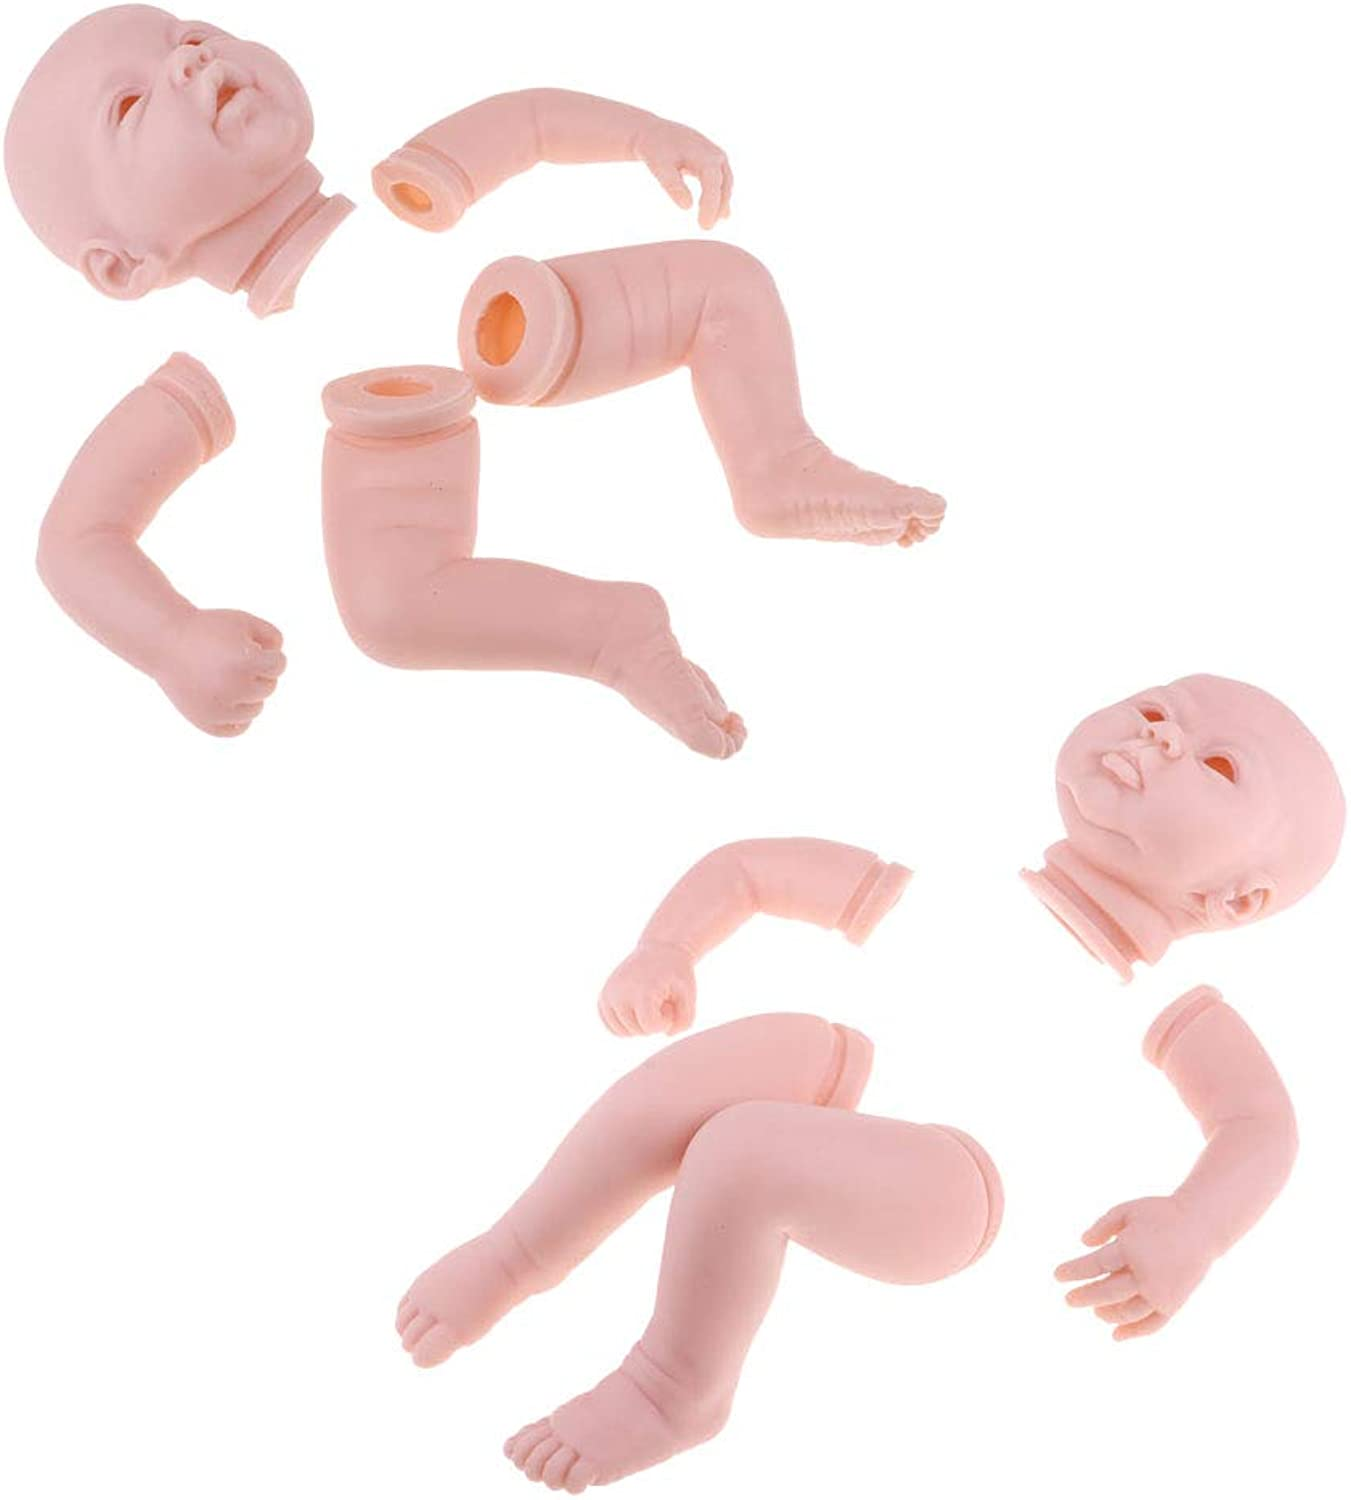 Kesoto 2pcs Real Soft Silicone 20inch Reborn Kits Baby Doll with Blank Head, Limbs Mold Accs